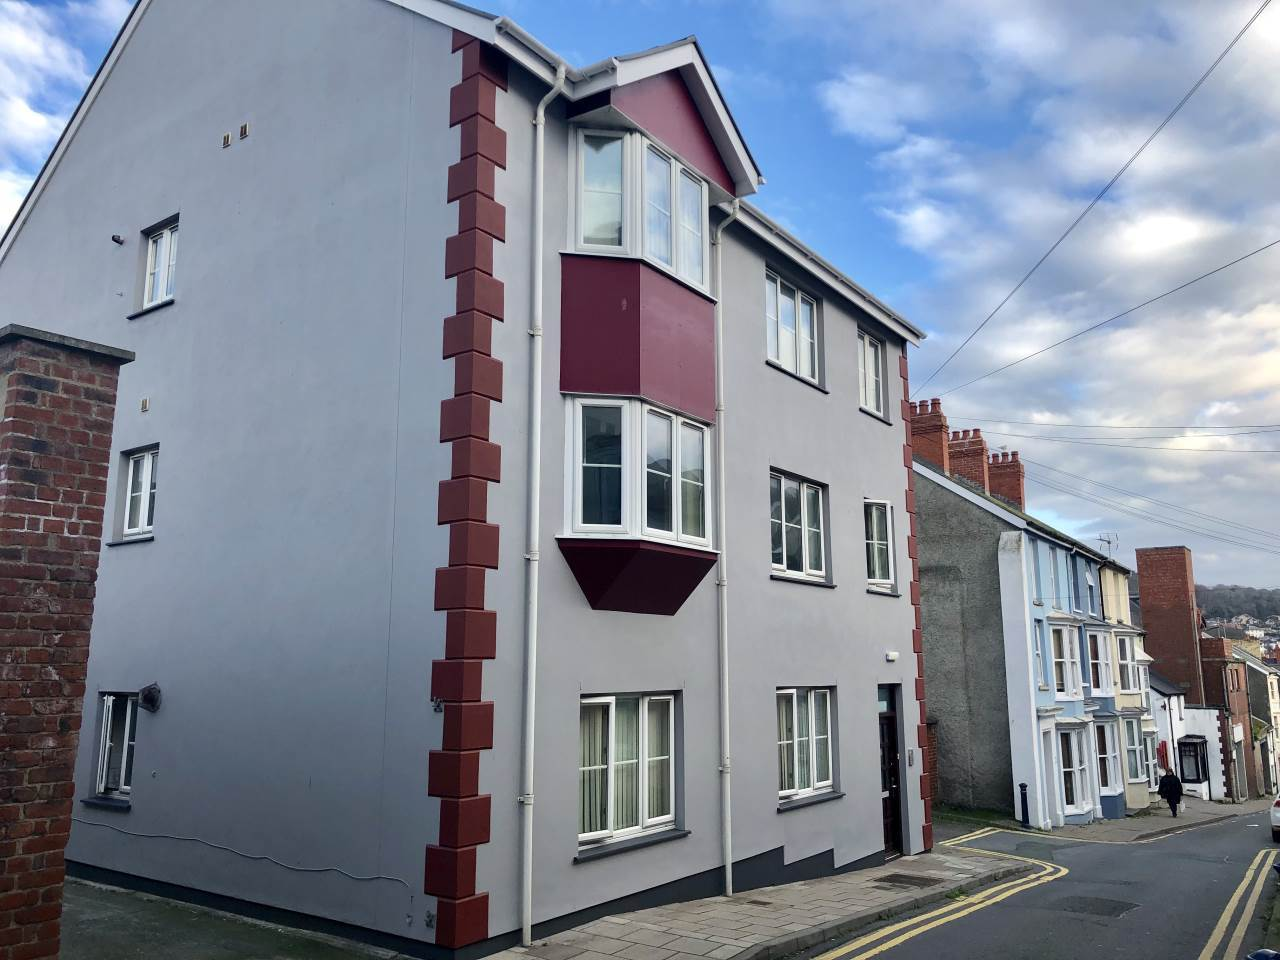 1 bed flat for sale in Aberystwyth, SY23